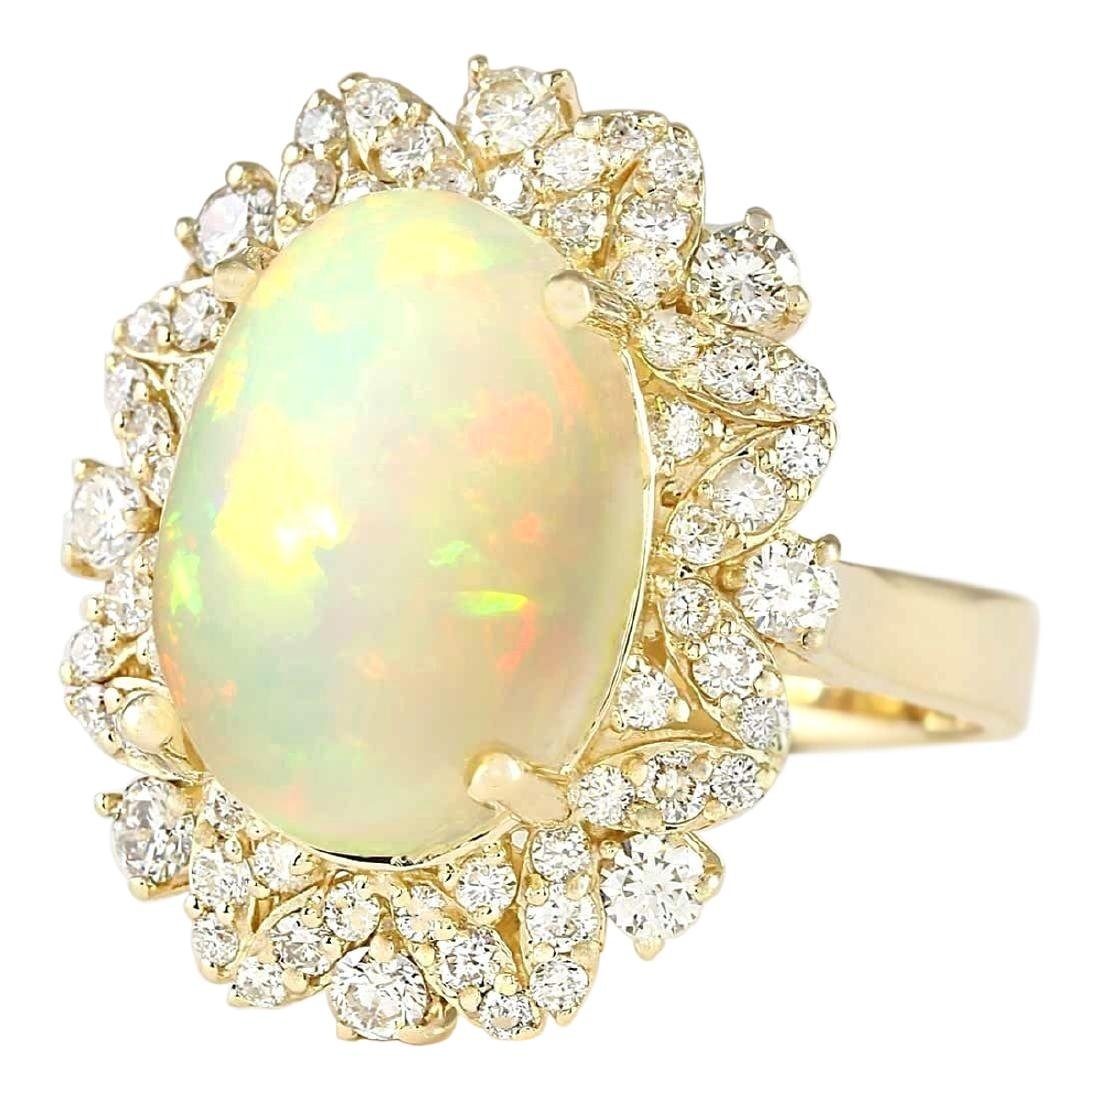 7.68 CTW Natural Opal And Diamond Ring In 18K Yellow - 2